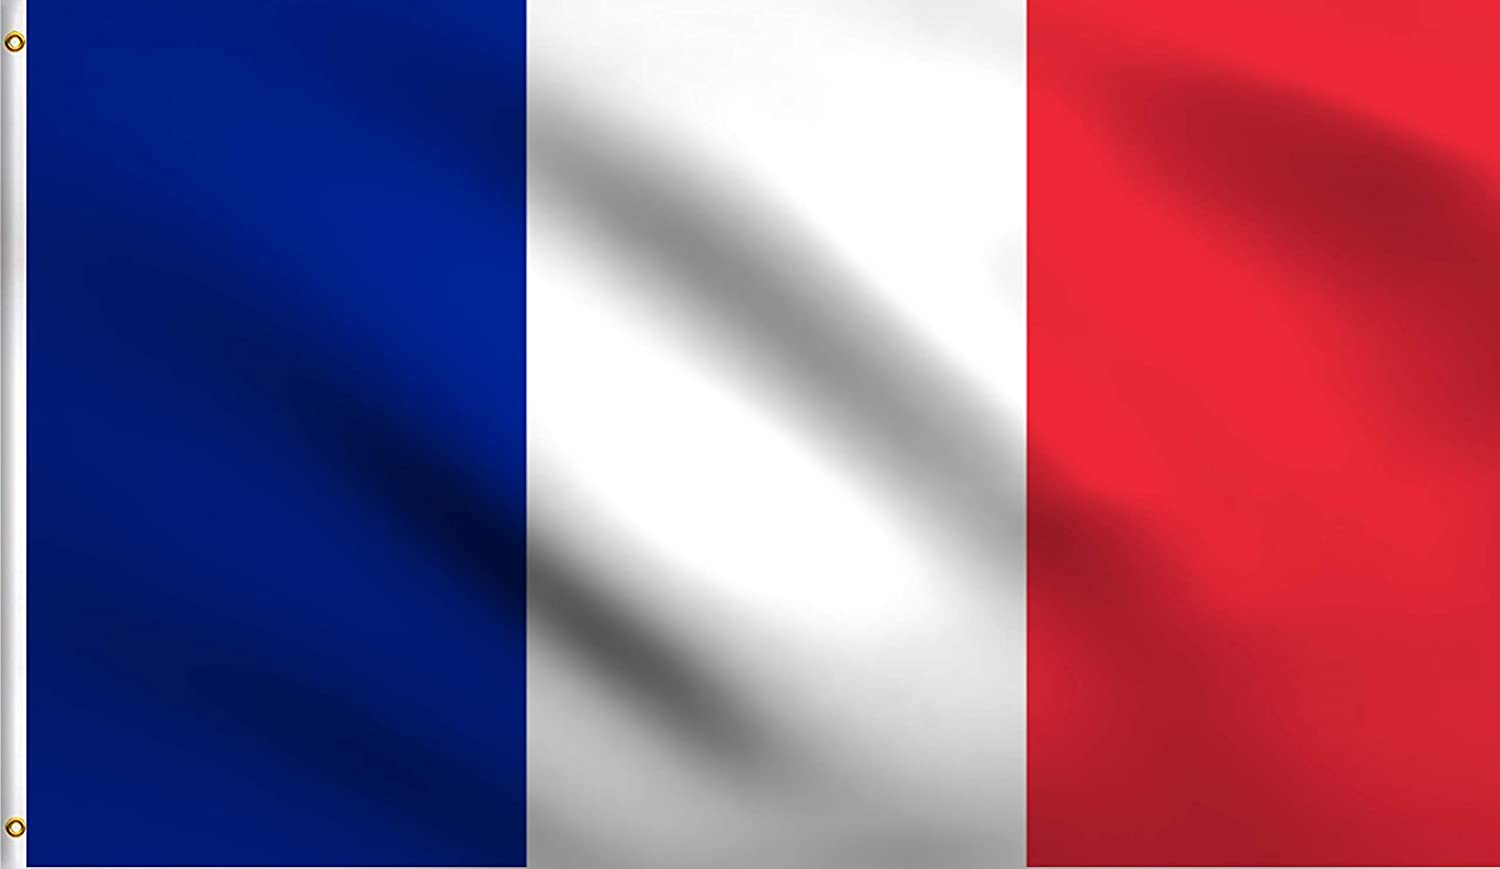 DMSE France French National Flag 2X3 Ft Foot 100% Polyester 100D Flag UV Resistant (2' X 3' Ft Foot)